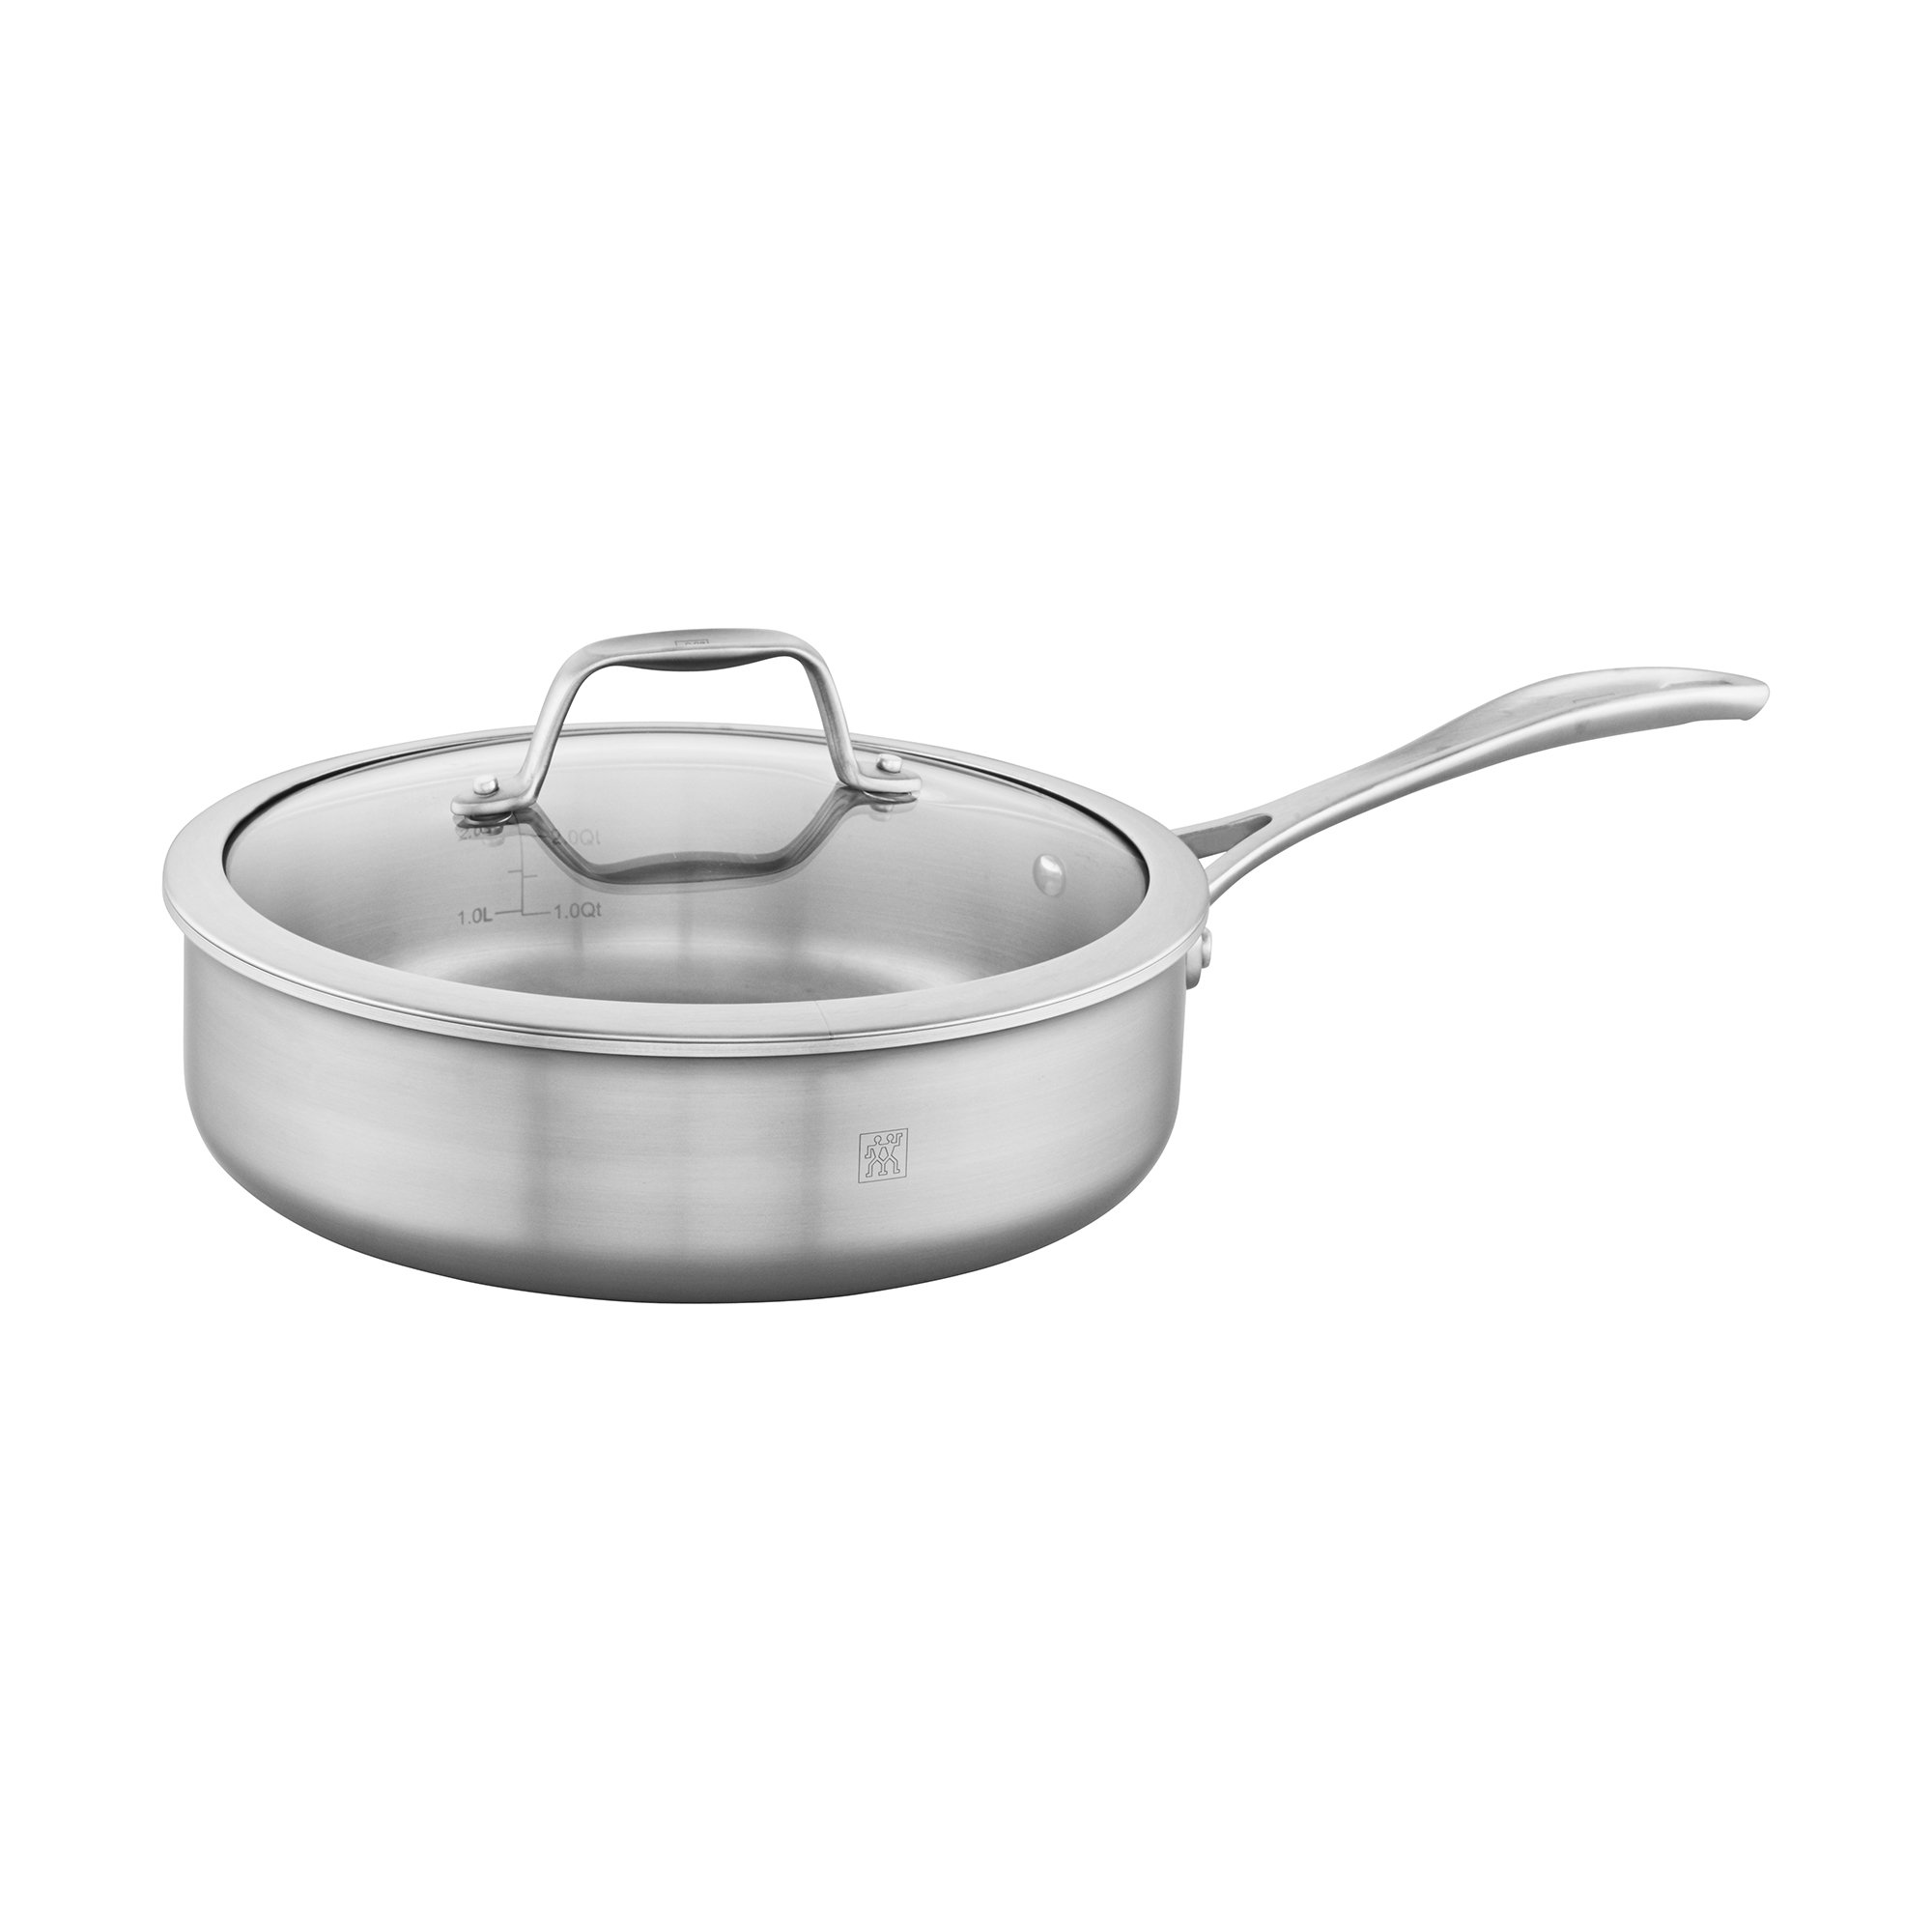 ZWILLING Spirit 3-ply 3-qt Stainless Steel Saute Pan